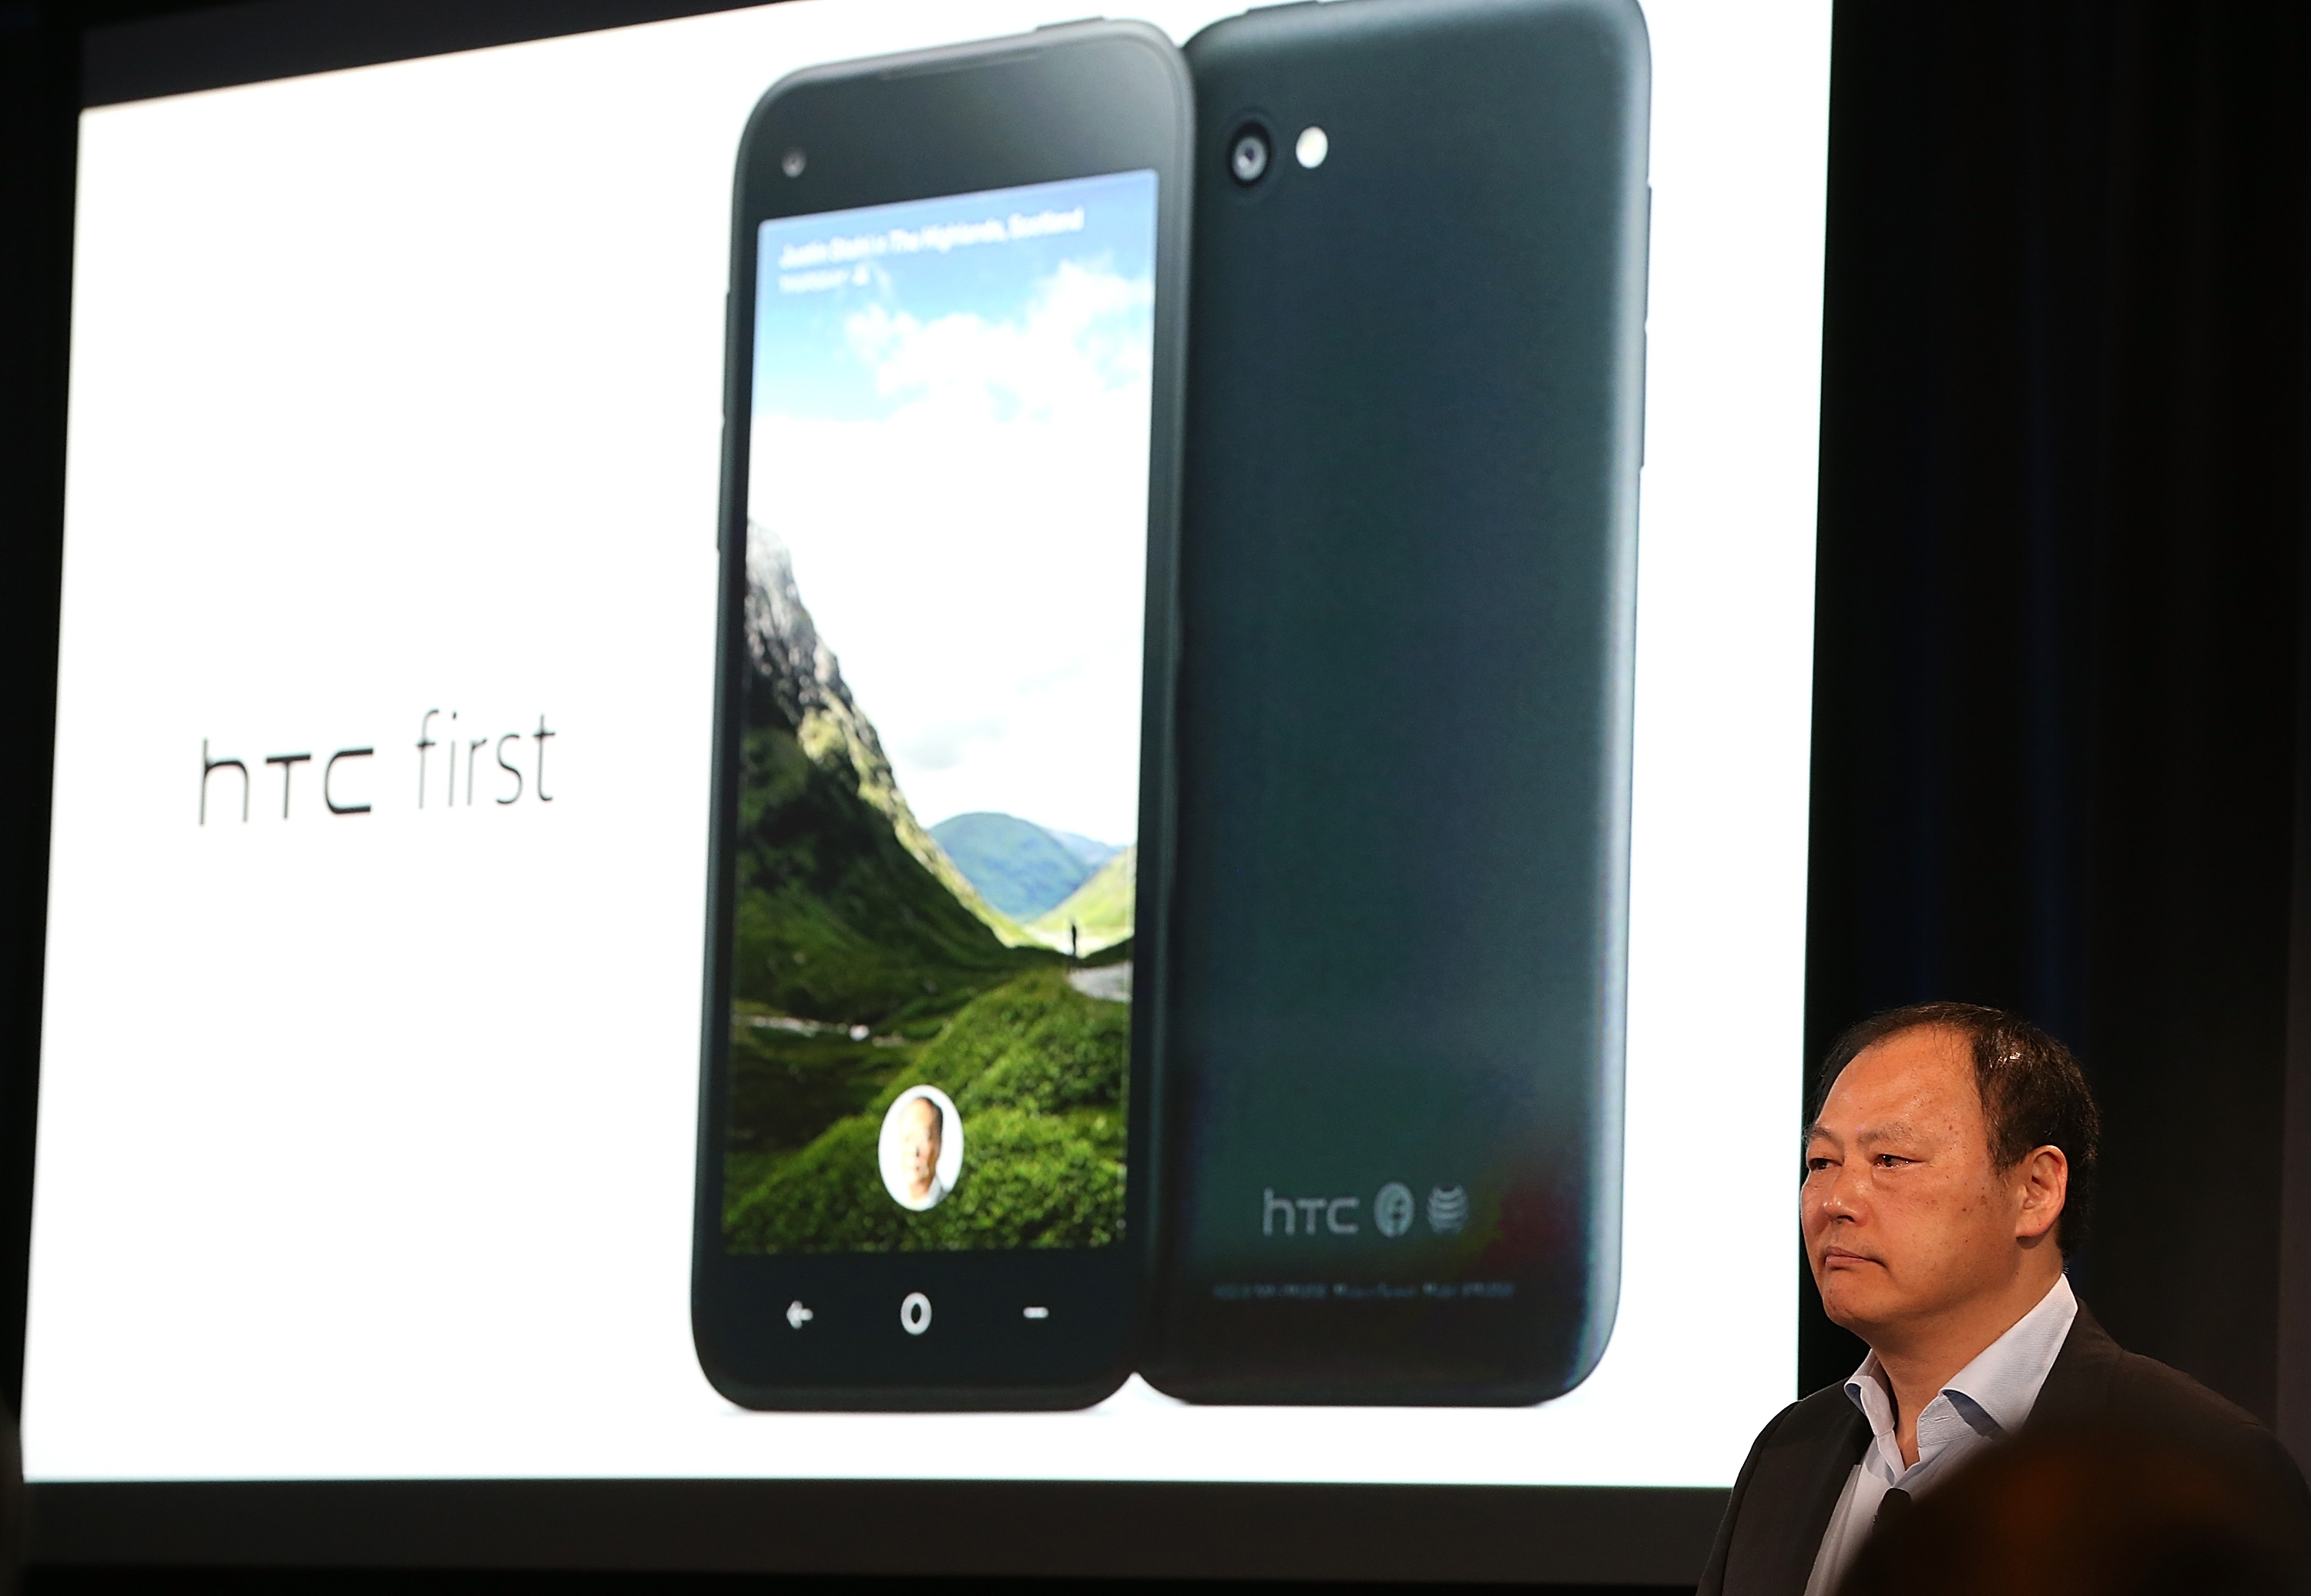 MENLO PARK, CA - APRIL 04: HTC CEO Peter Chou presents the new HTC First phone during an event at Facebook headquarters during an event at Facebook headquarters on April 4, 2013 in Menlo Park, California. Facebook CEO Mark Zuckerberg announced a new product for Android called Facebook Home as well as the new HTC First phone that will feature the new software.   Justin Sullivan/Getty Images/AFP== FOR NEWSPAPERS, INTERNET, TELCOS & TELEVISION USE ONLY ==